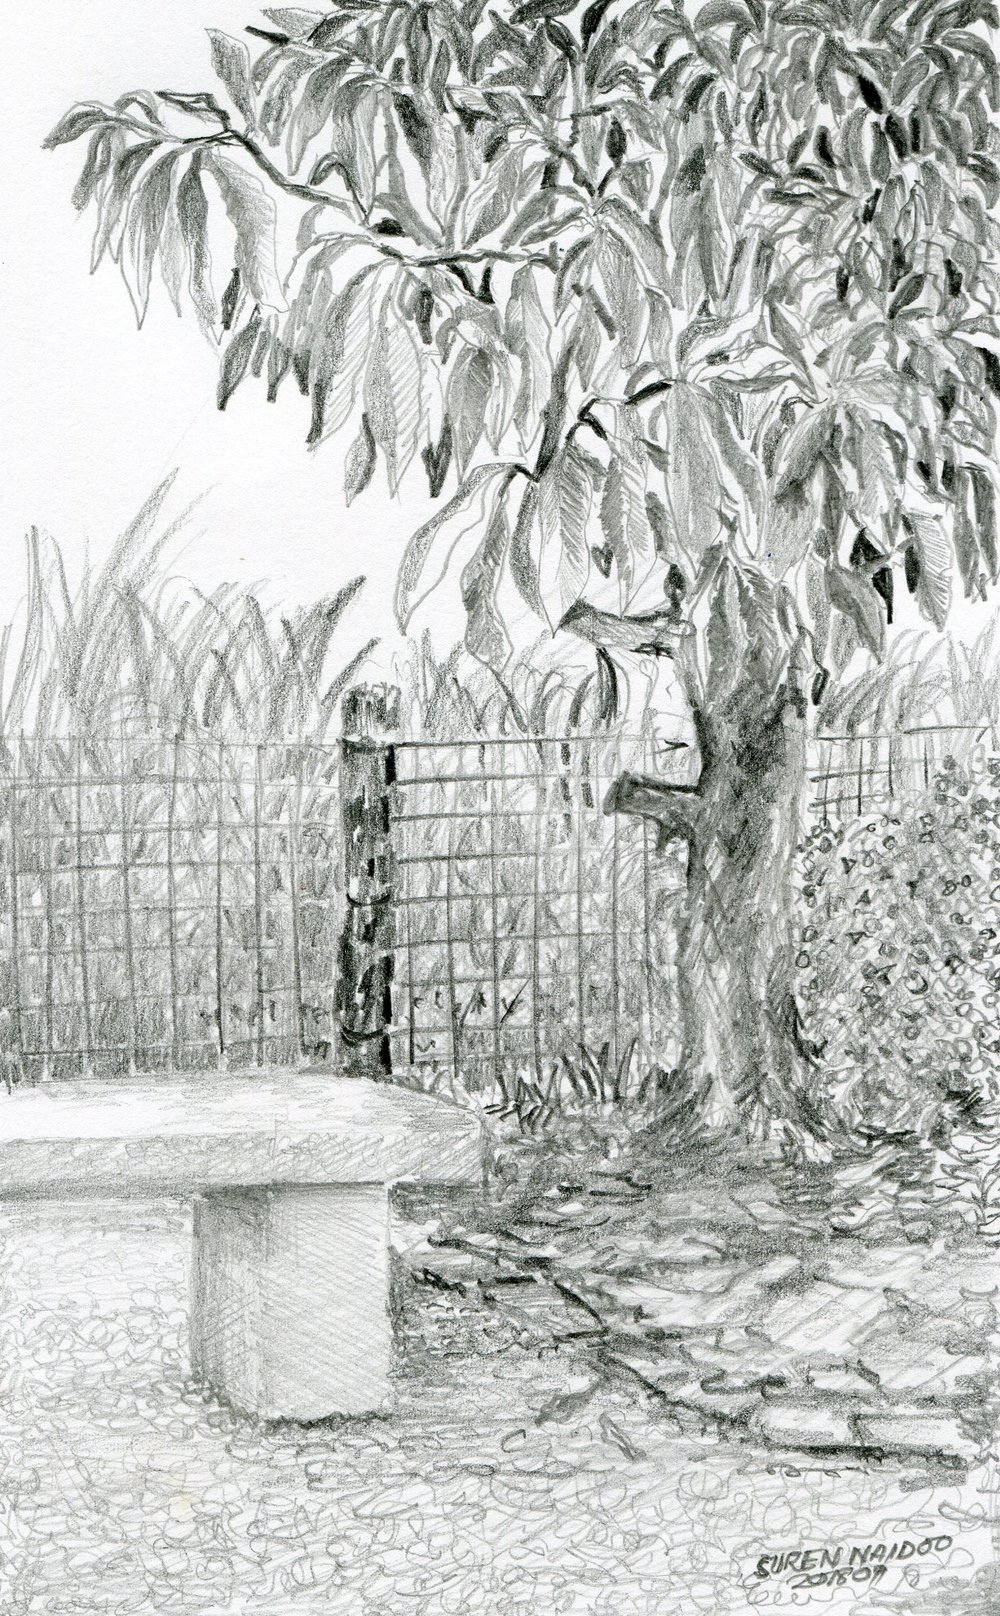 29B  Suren Naidoo  A quiet corner  pencil on paper